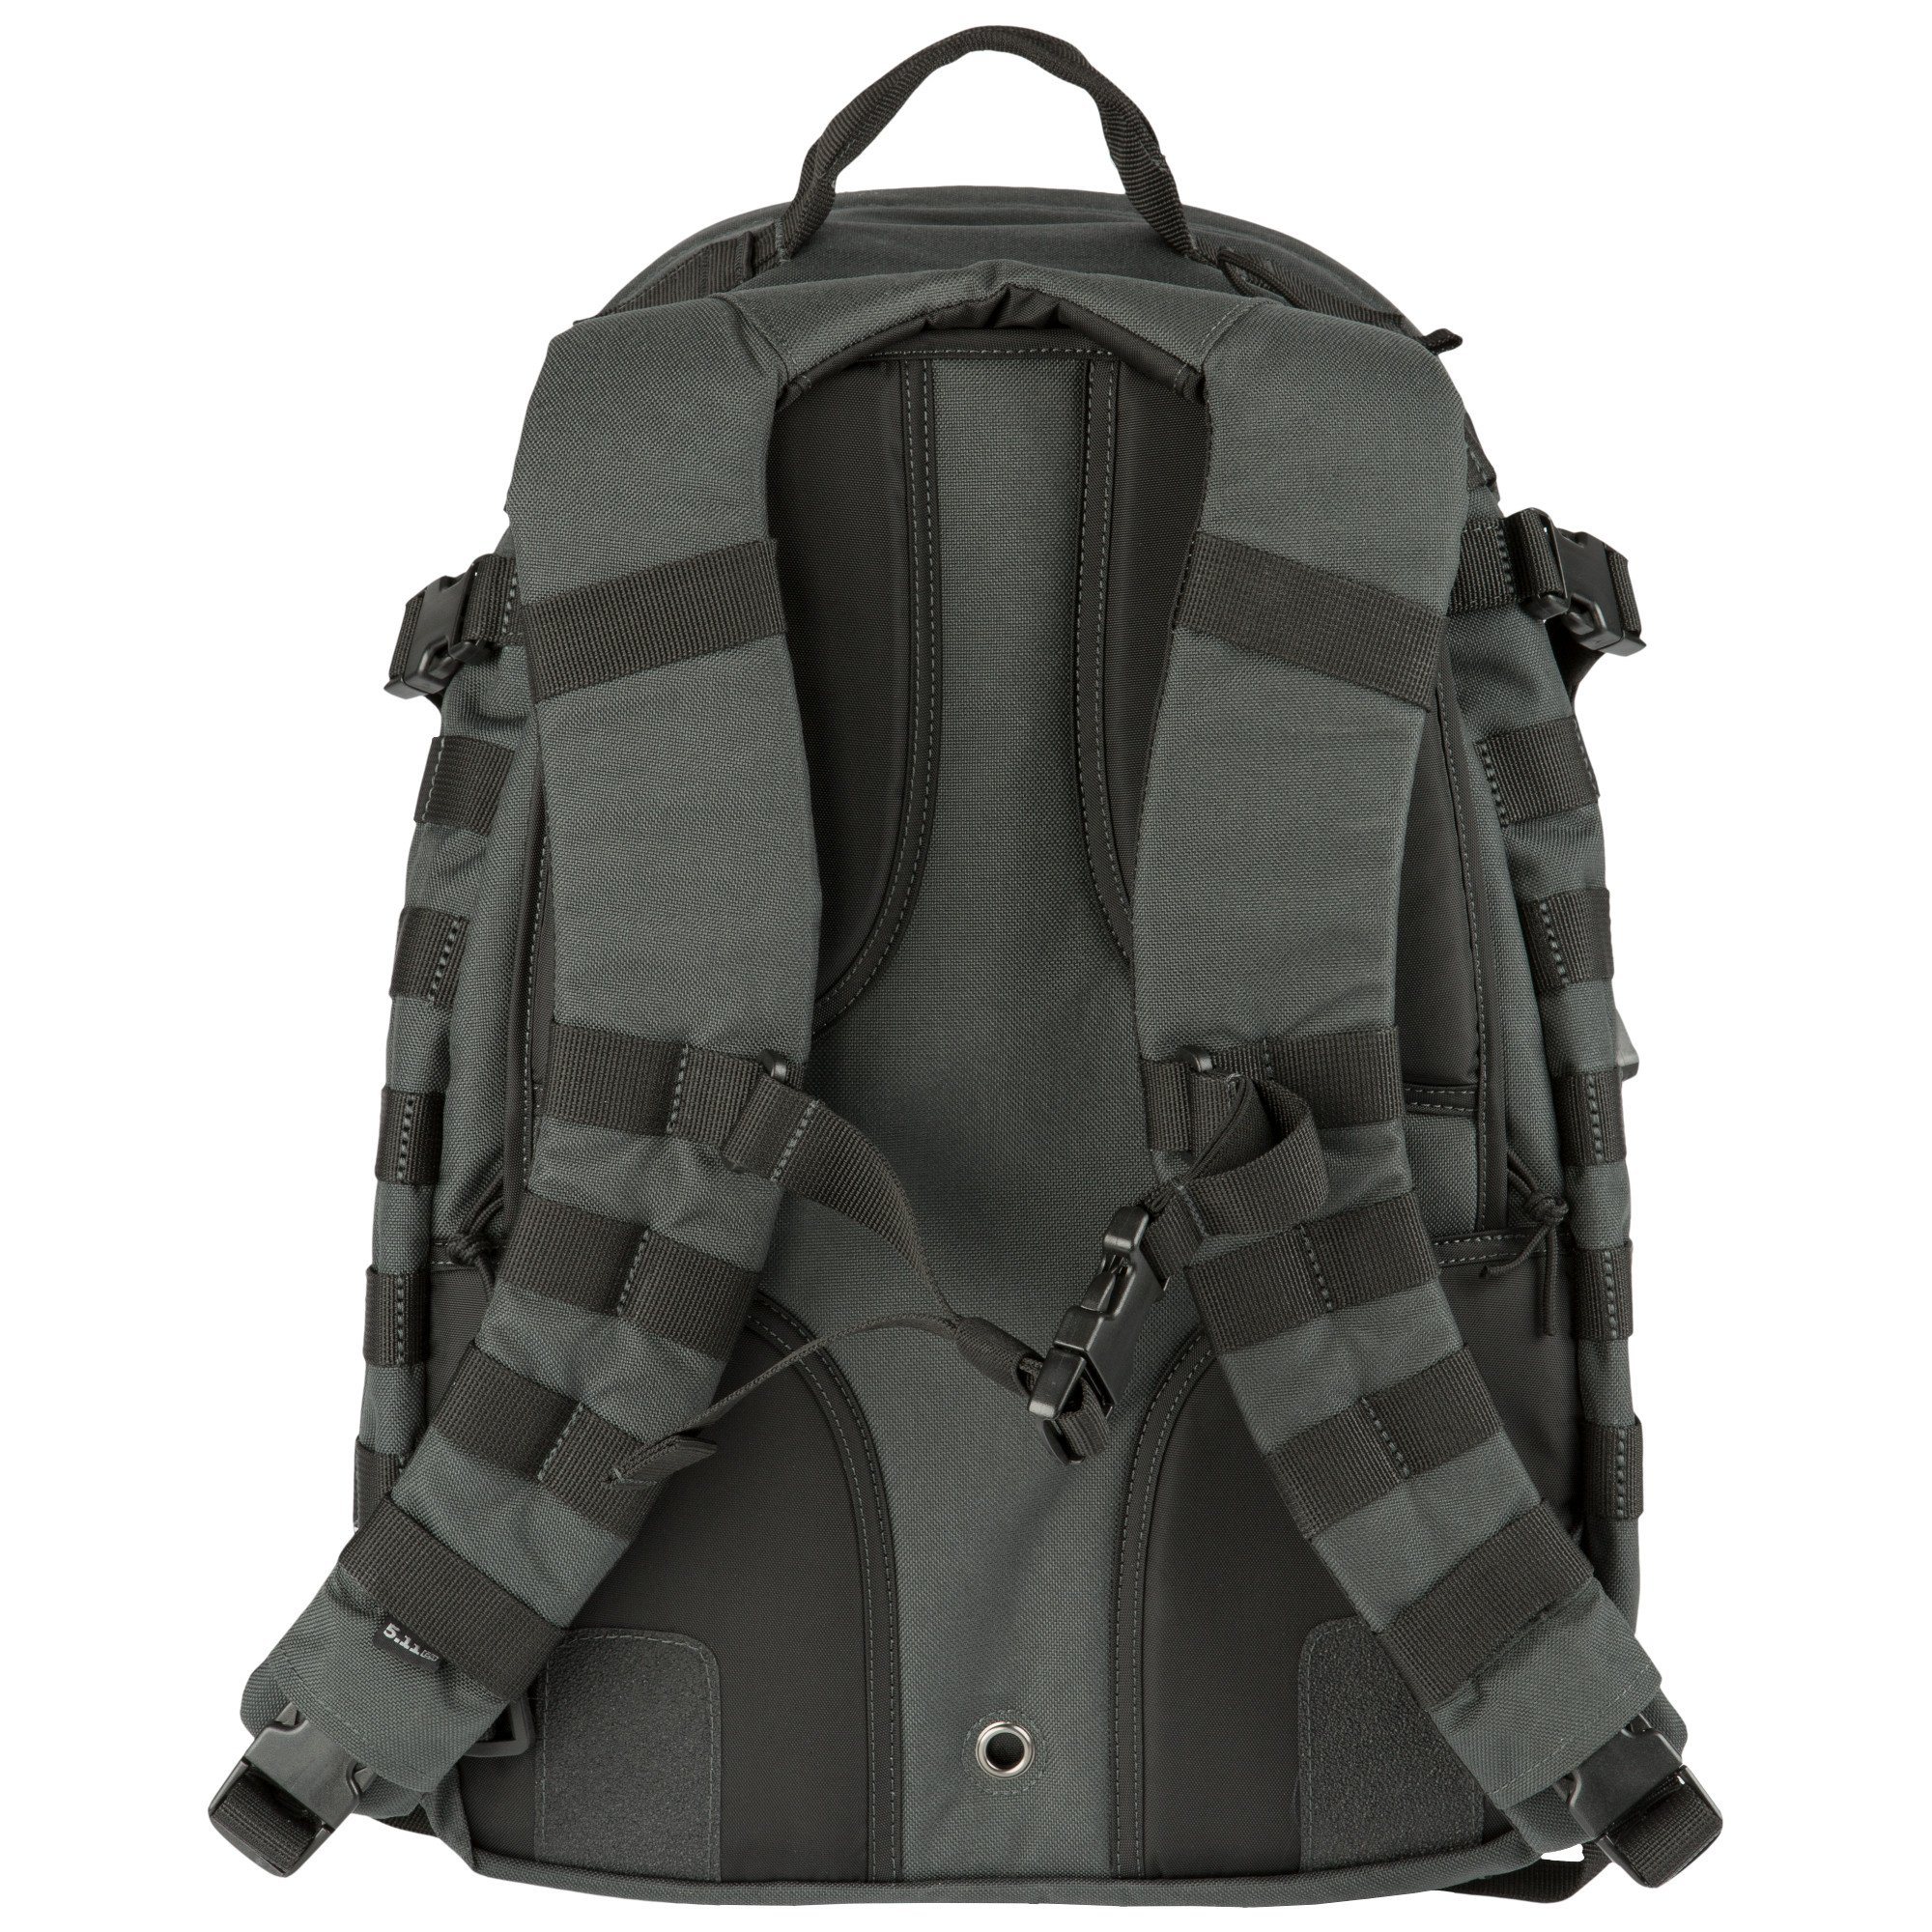 Balo 5.11 Tactical Rush 24 – Double Tap